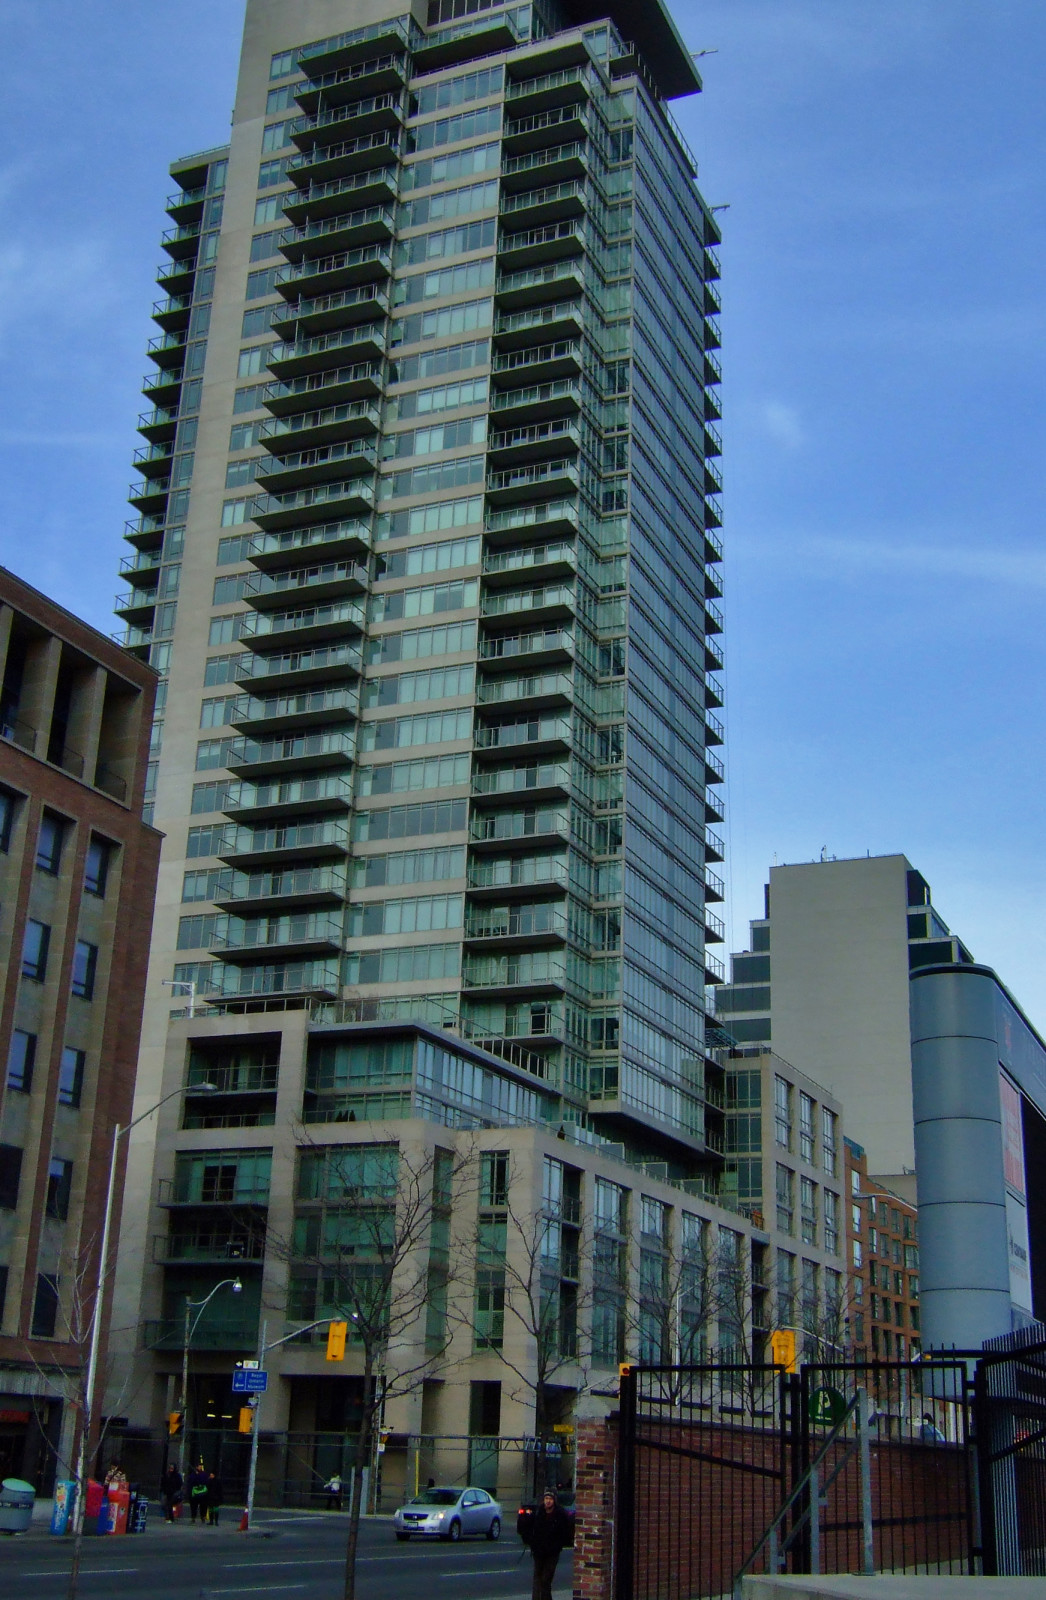 "Figure 6. One Bedford at Bloor, completed in 2011, was the subject of considerable controversy by residents and existing businesses before pre-construction demolition began in late 2006. Residents' concerns of excessive height (relative to existing built form) and lost business were allayed, allowing the project to proceed. No inscription of the ""One Bedford at Bloor"" toponym remains. [Idlewild]"